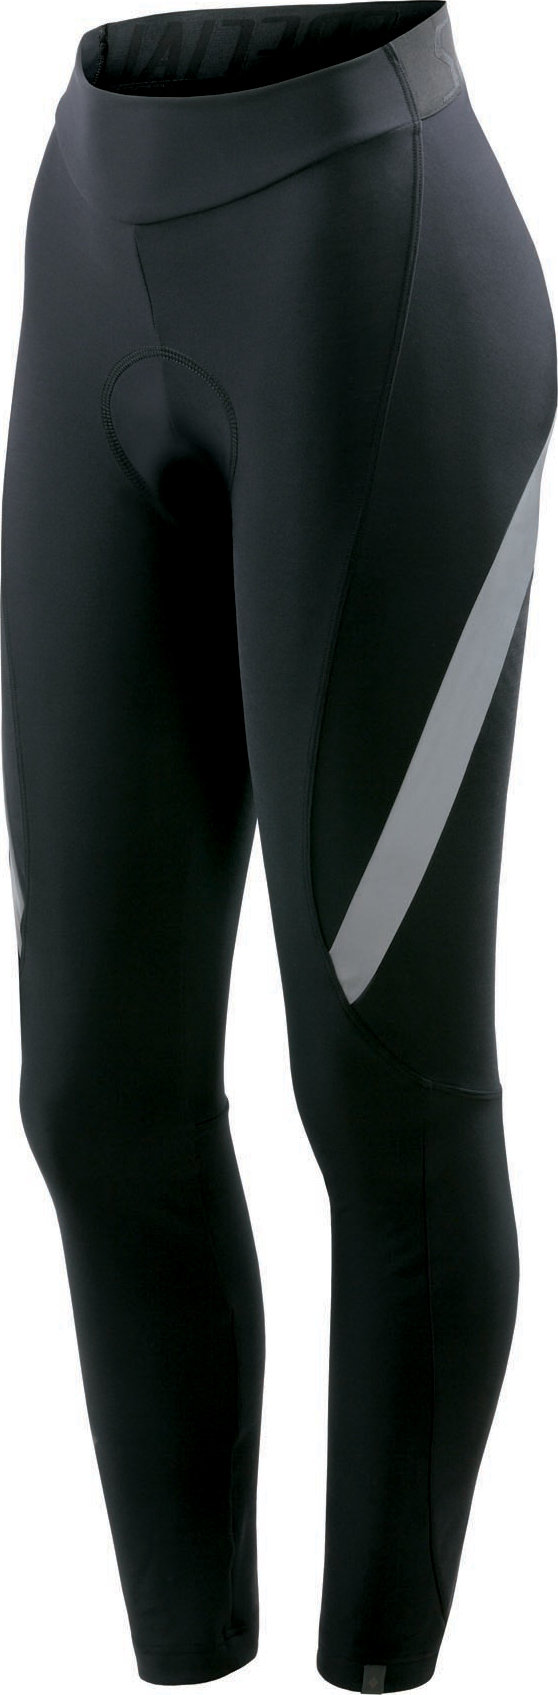 Specialized Therminal RBX Comp Wmn Cycling Tight Black S - Alpha Bikes